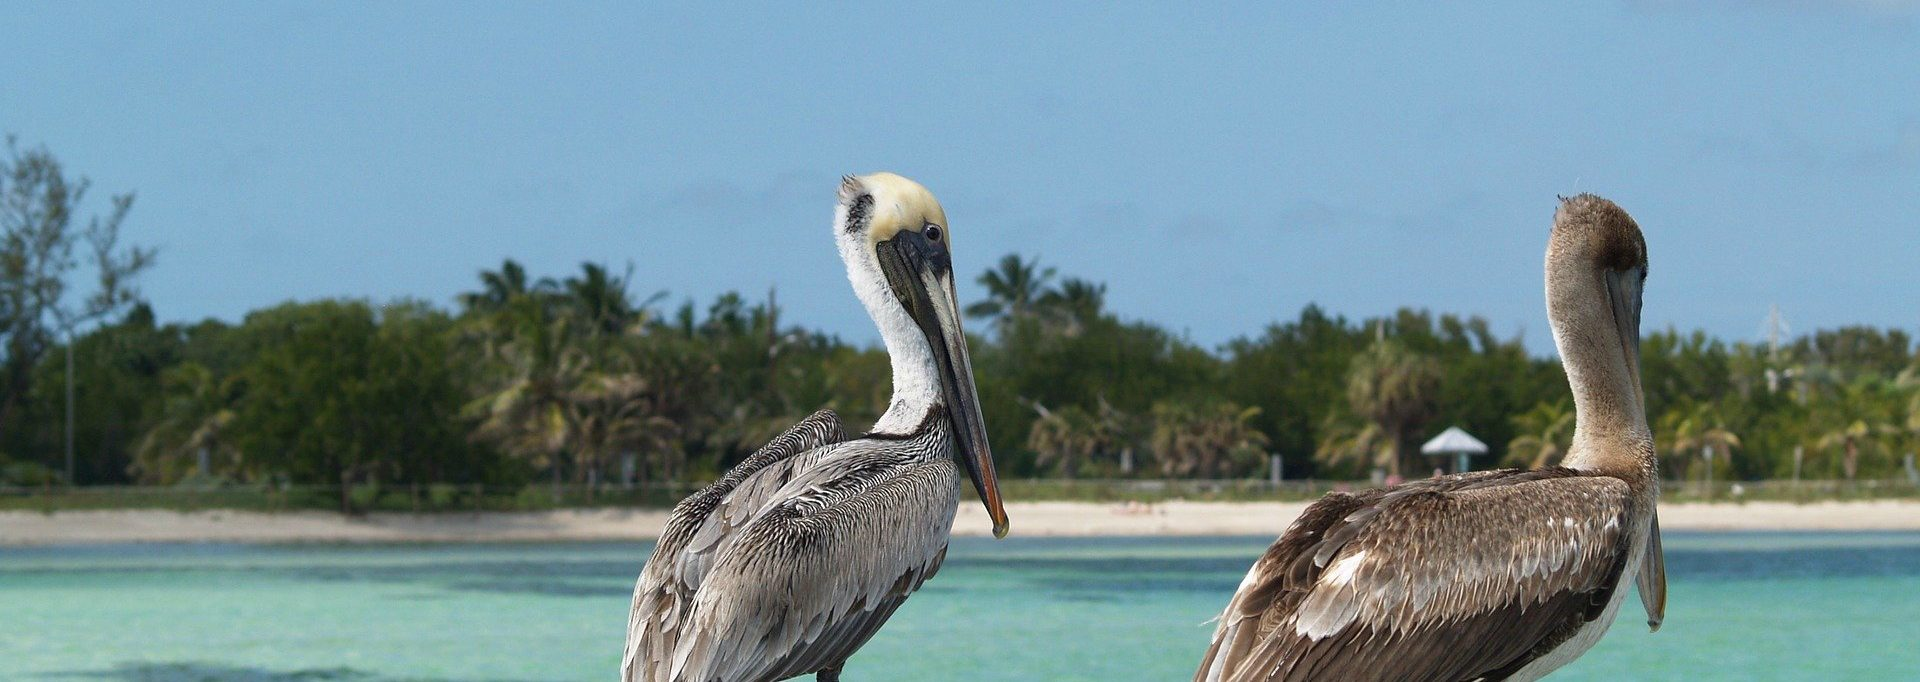 Things To Do In Key West Pelicans